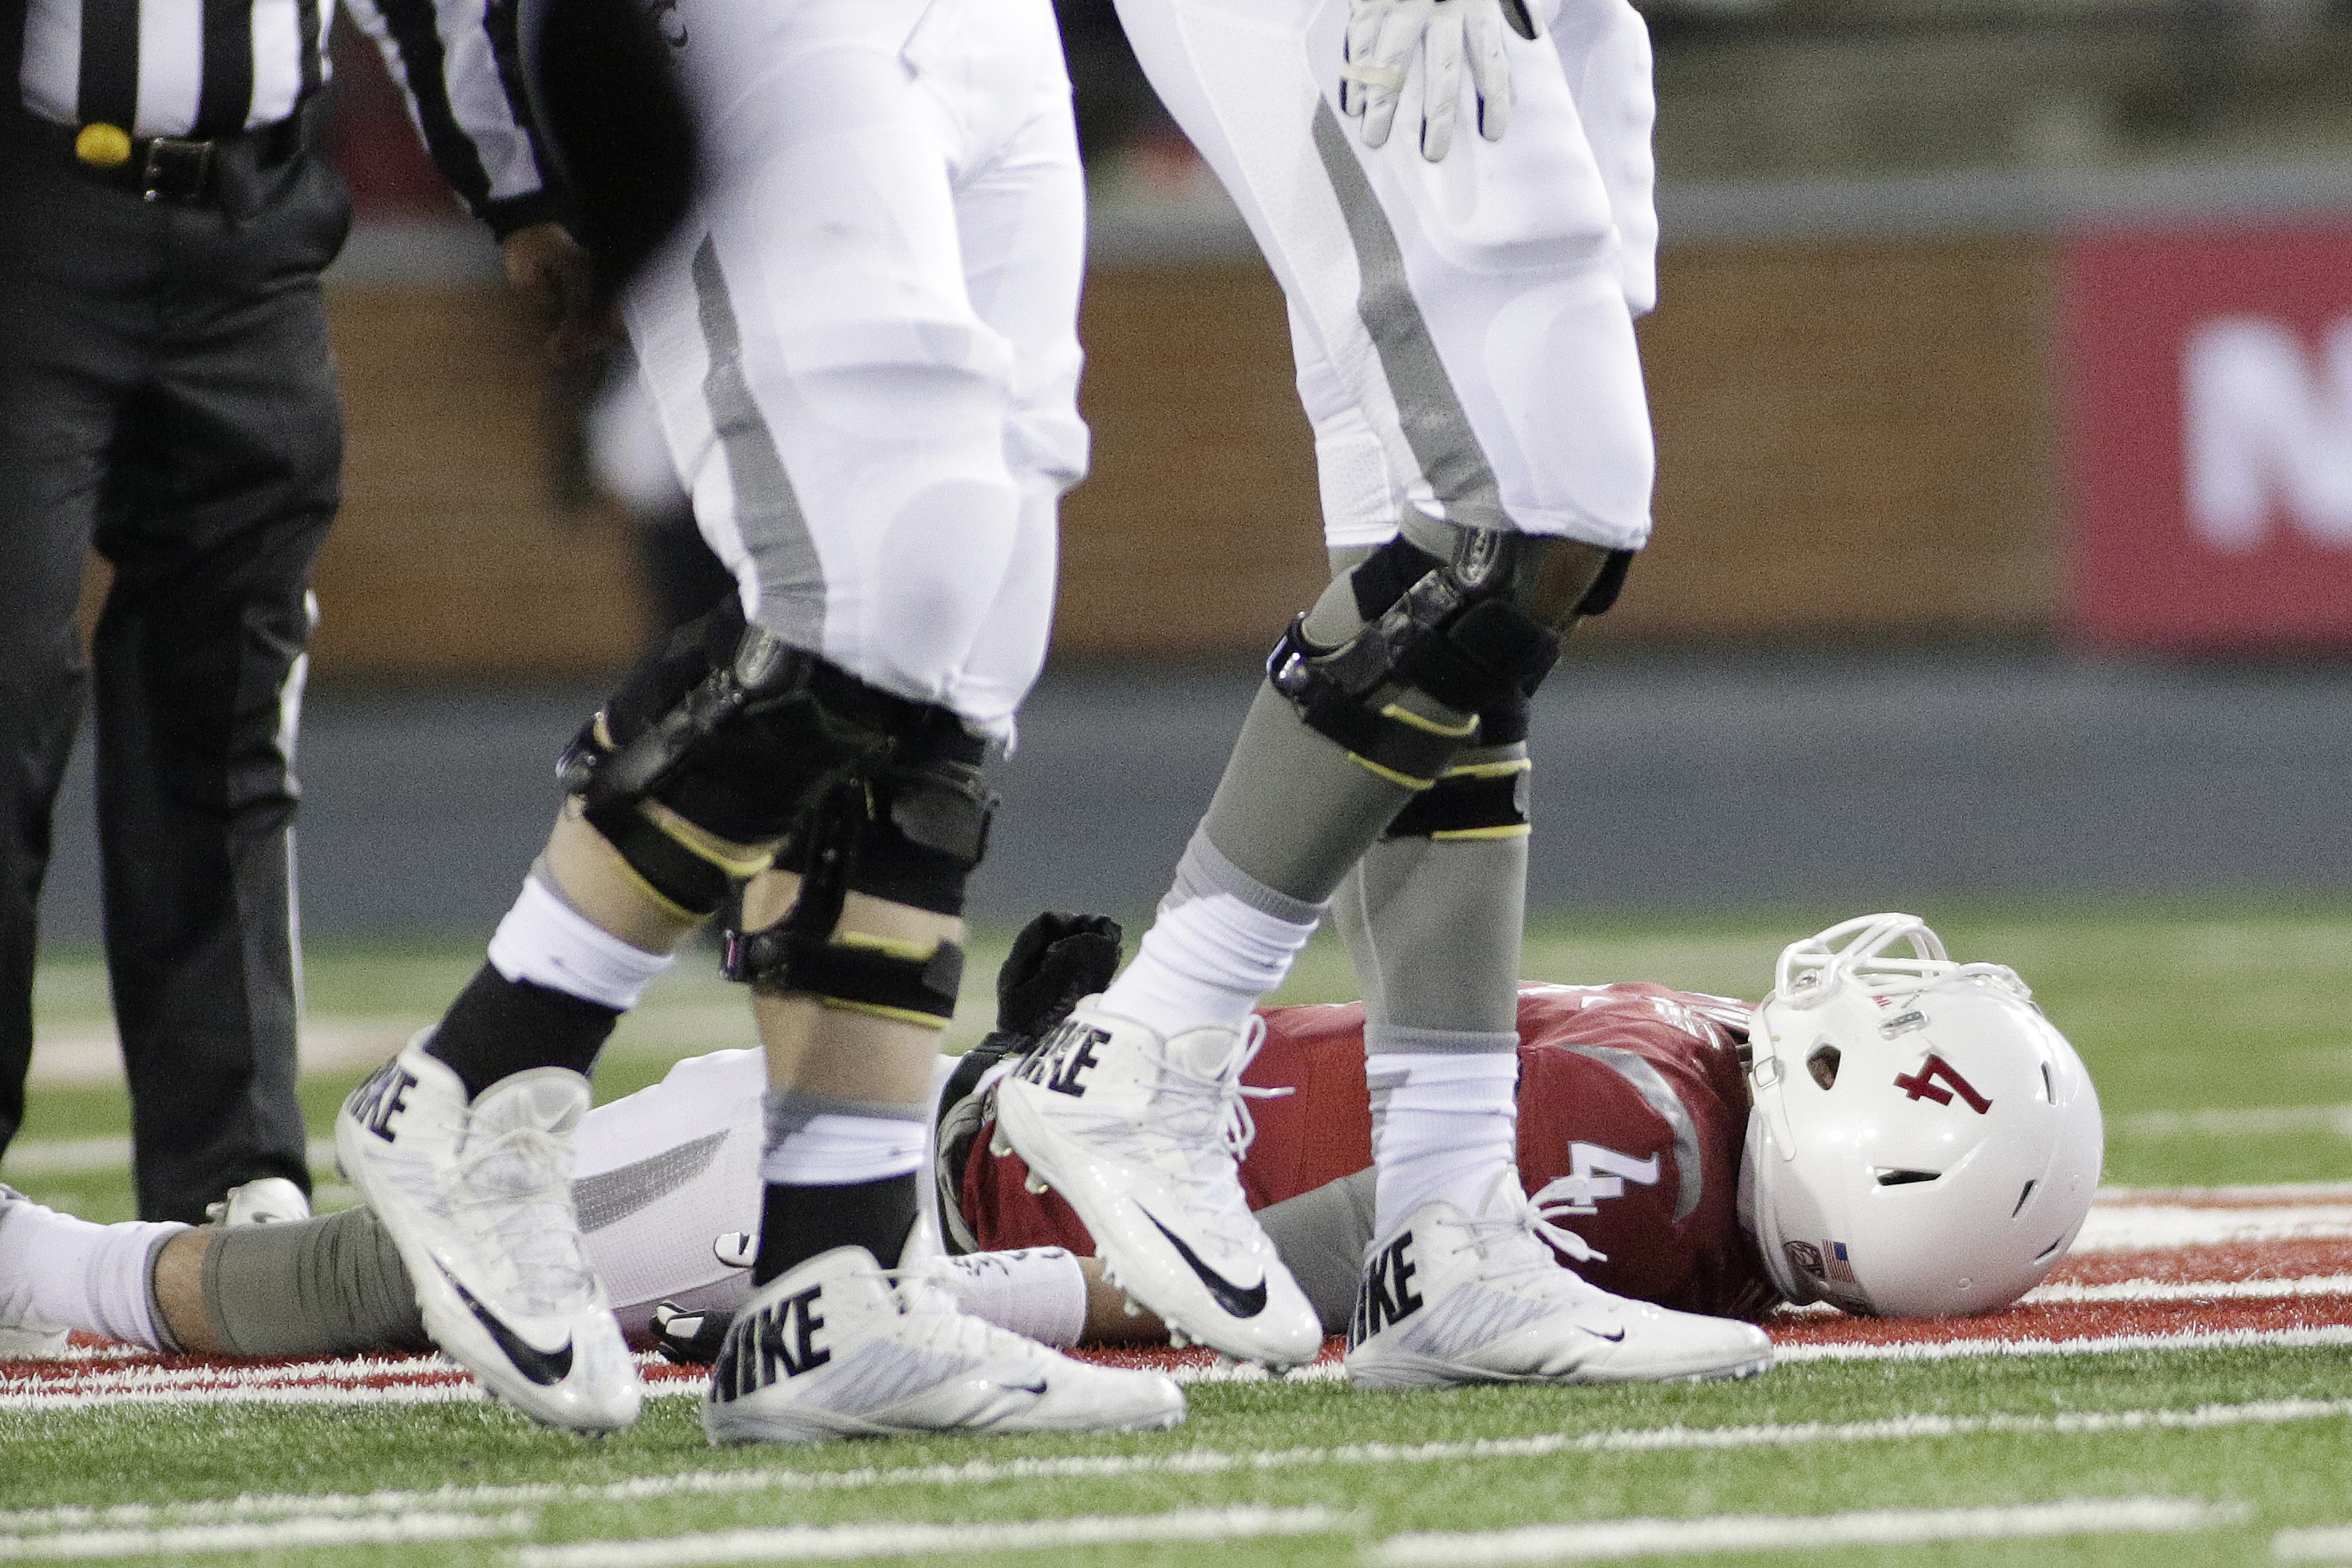 FILE - In this Nov. 21, 2015, file photo, Washington State quarterback Luke Falk (4), who was later carted off the filed, rests after being tackled during the second half of an NCAA college football game against Colorado, in Pullman, Wash. The Big 12 cham